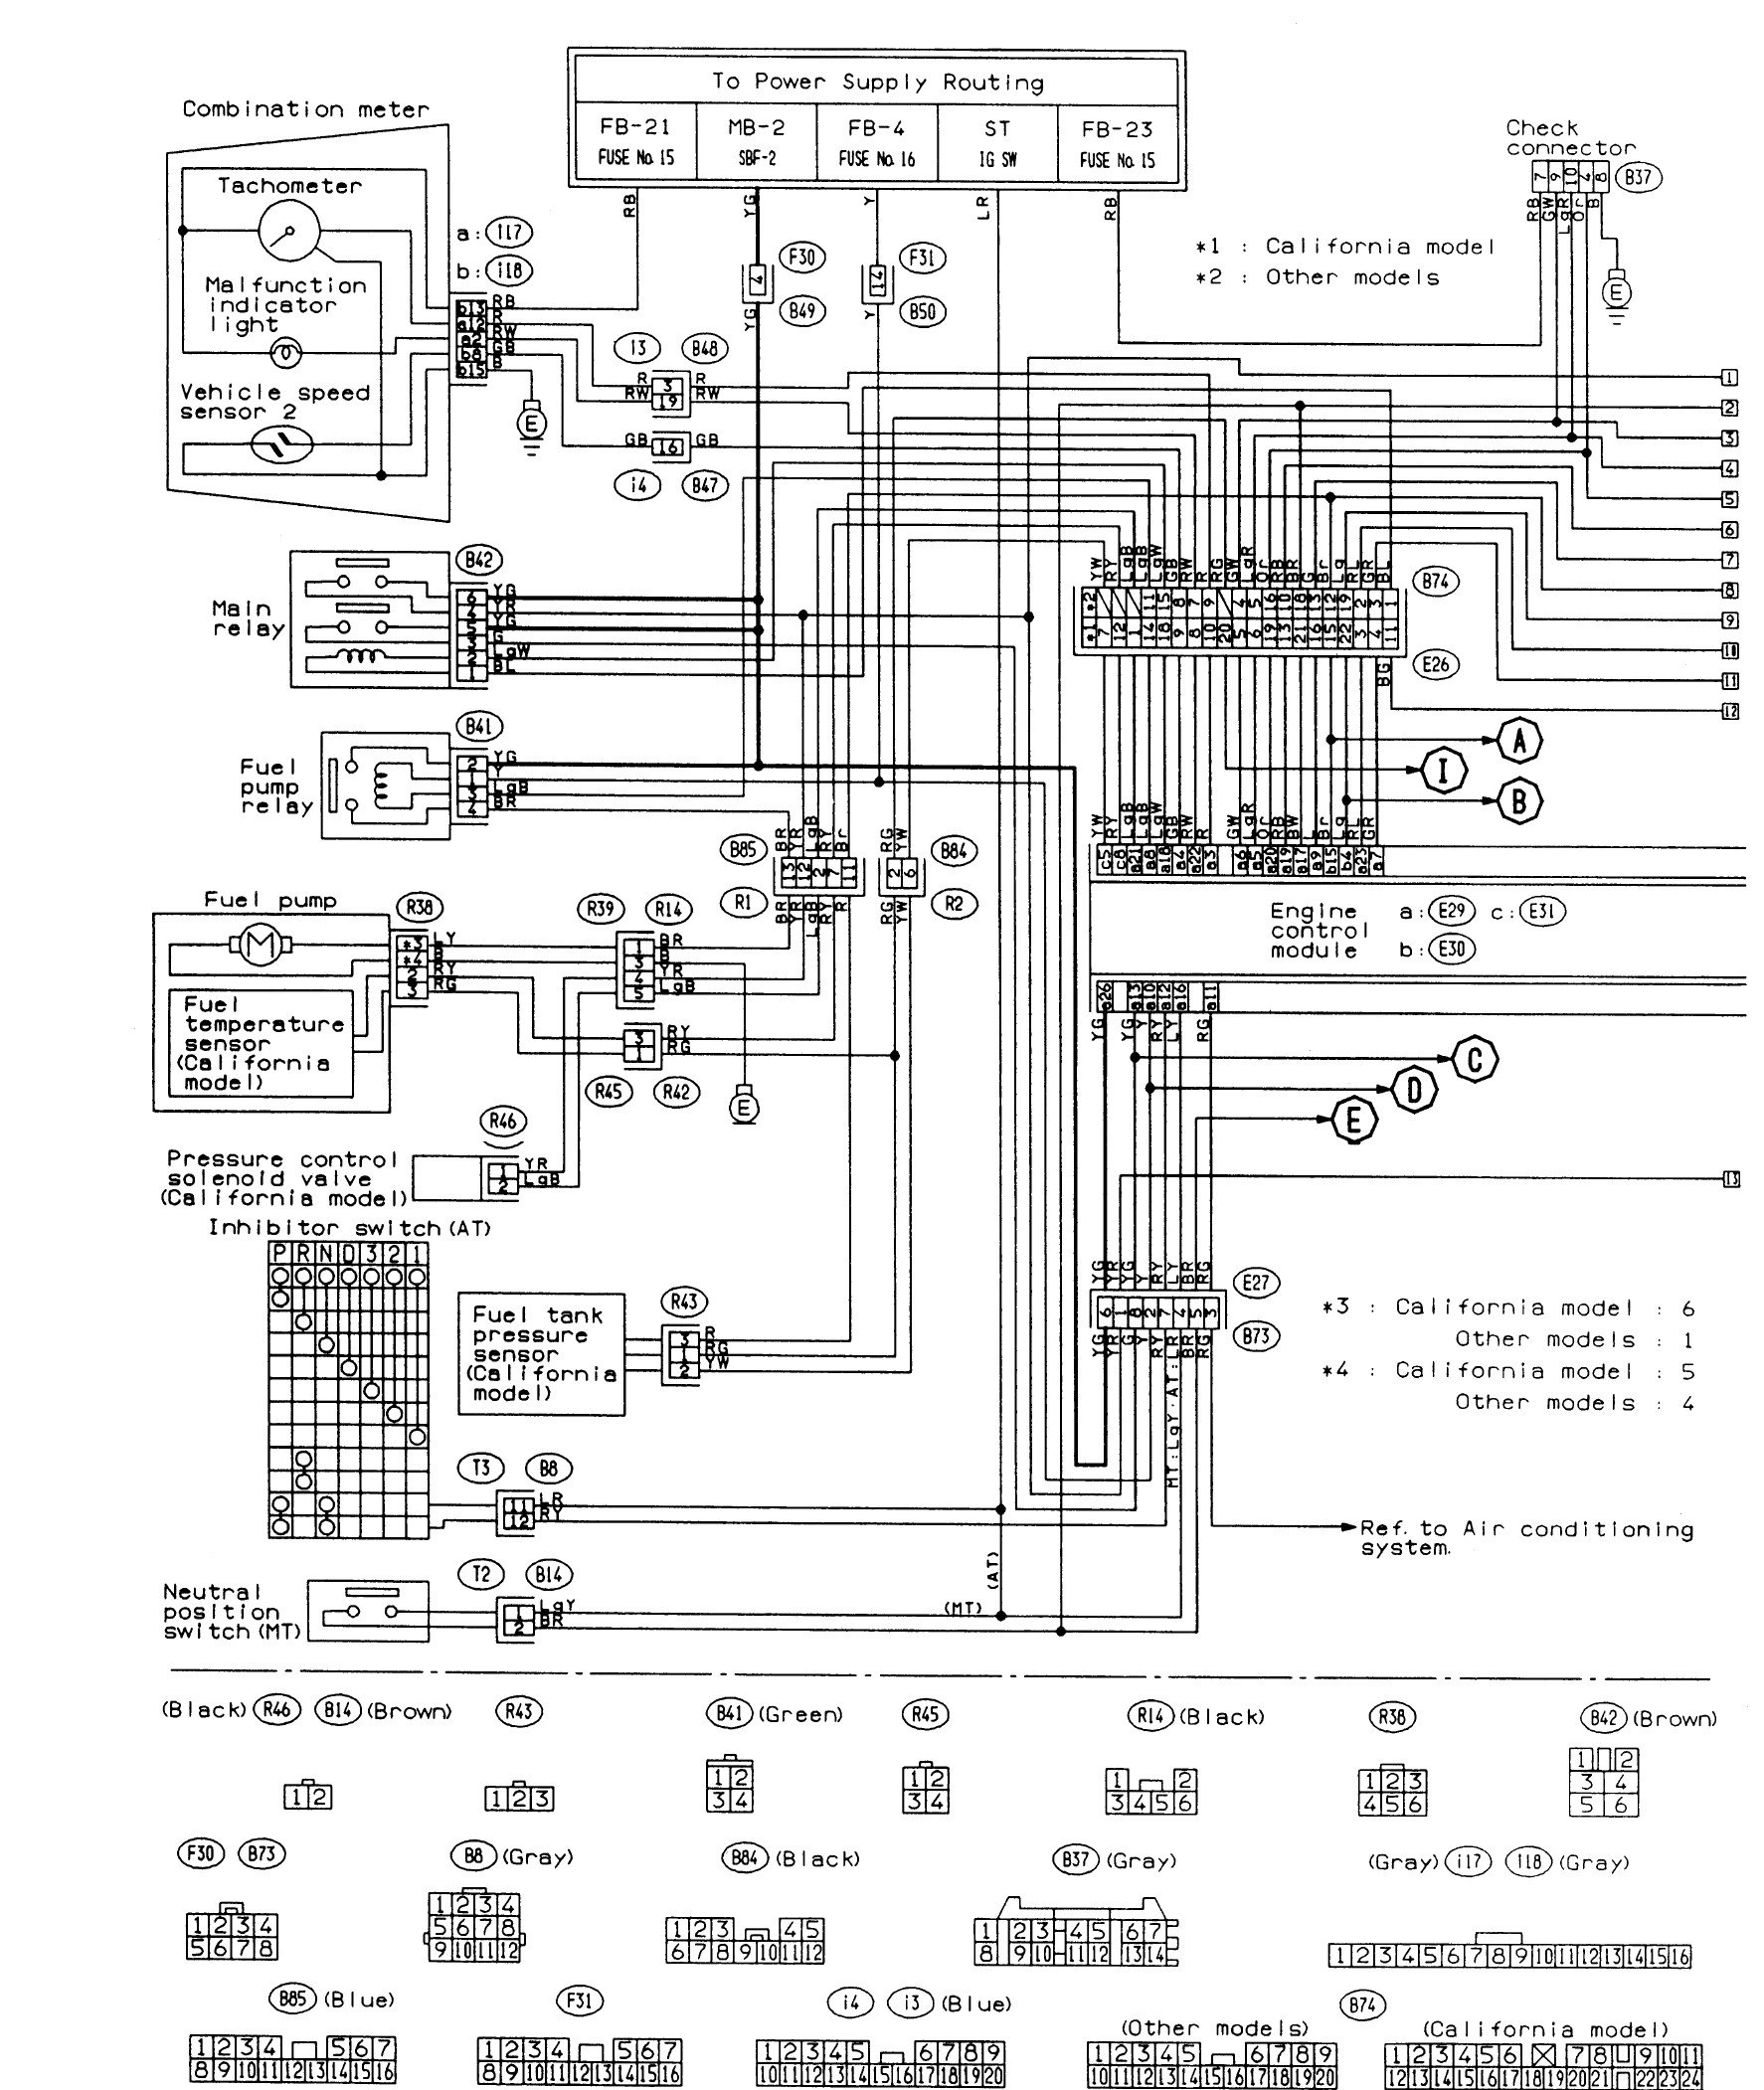 wiring diagram for subaru legacy  u2022 wiring diagram for free